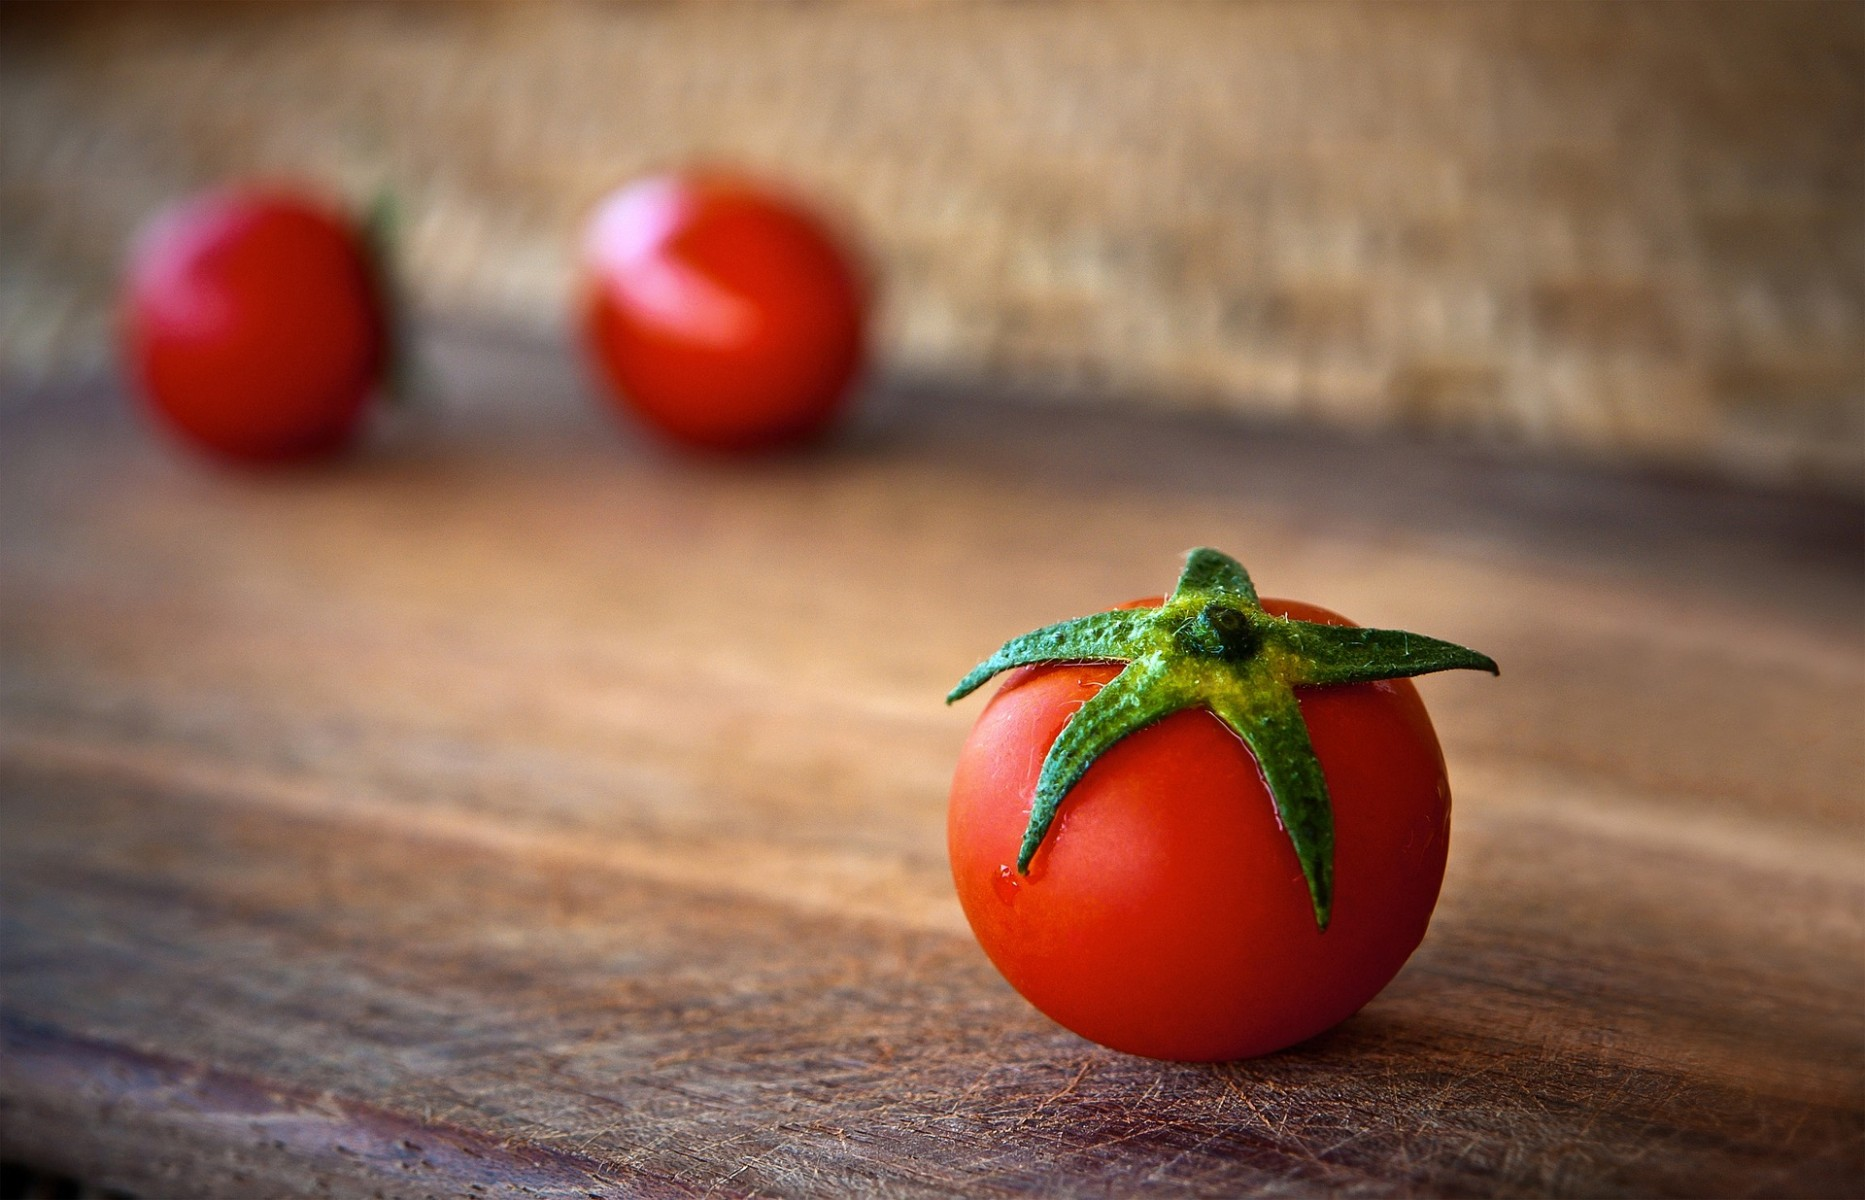 Ohio State research found that iron-rich foods such as red meat could strip away some anti-cancer benefits of tomatoes.